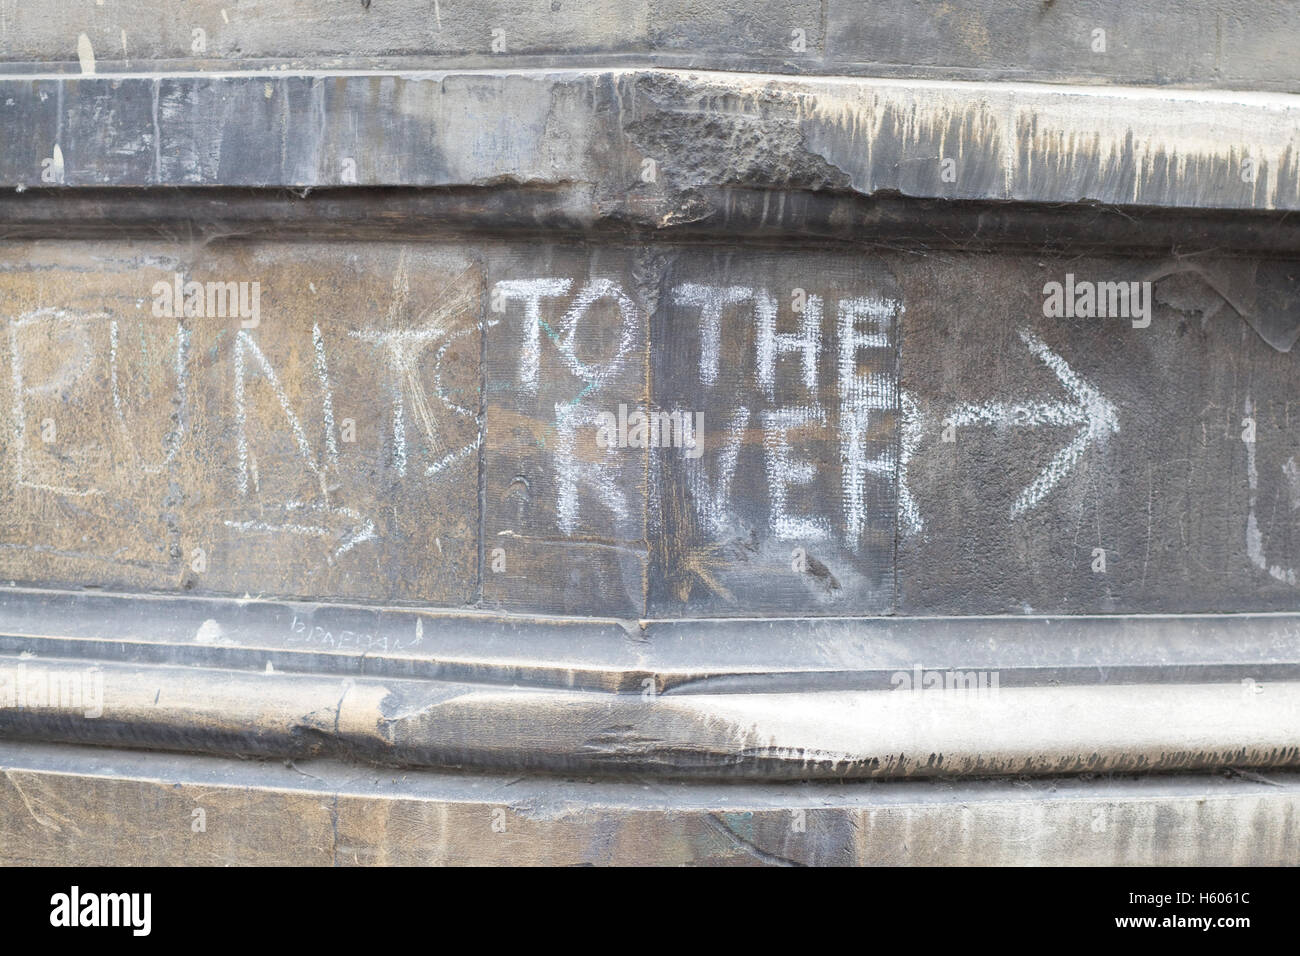 Directions to the river Cam and punting written in chalk - Stock Image